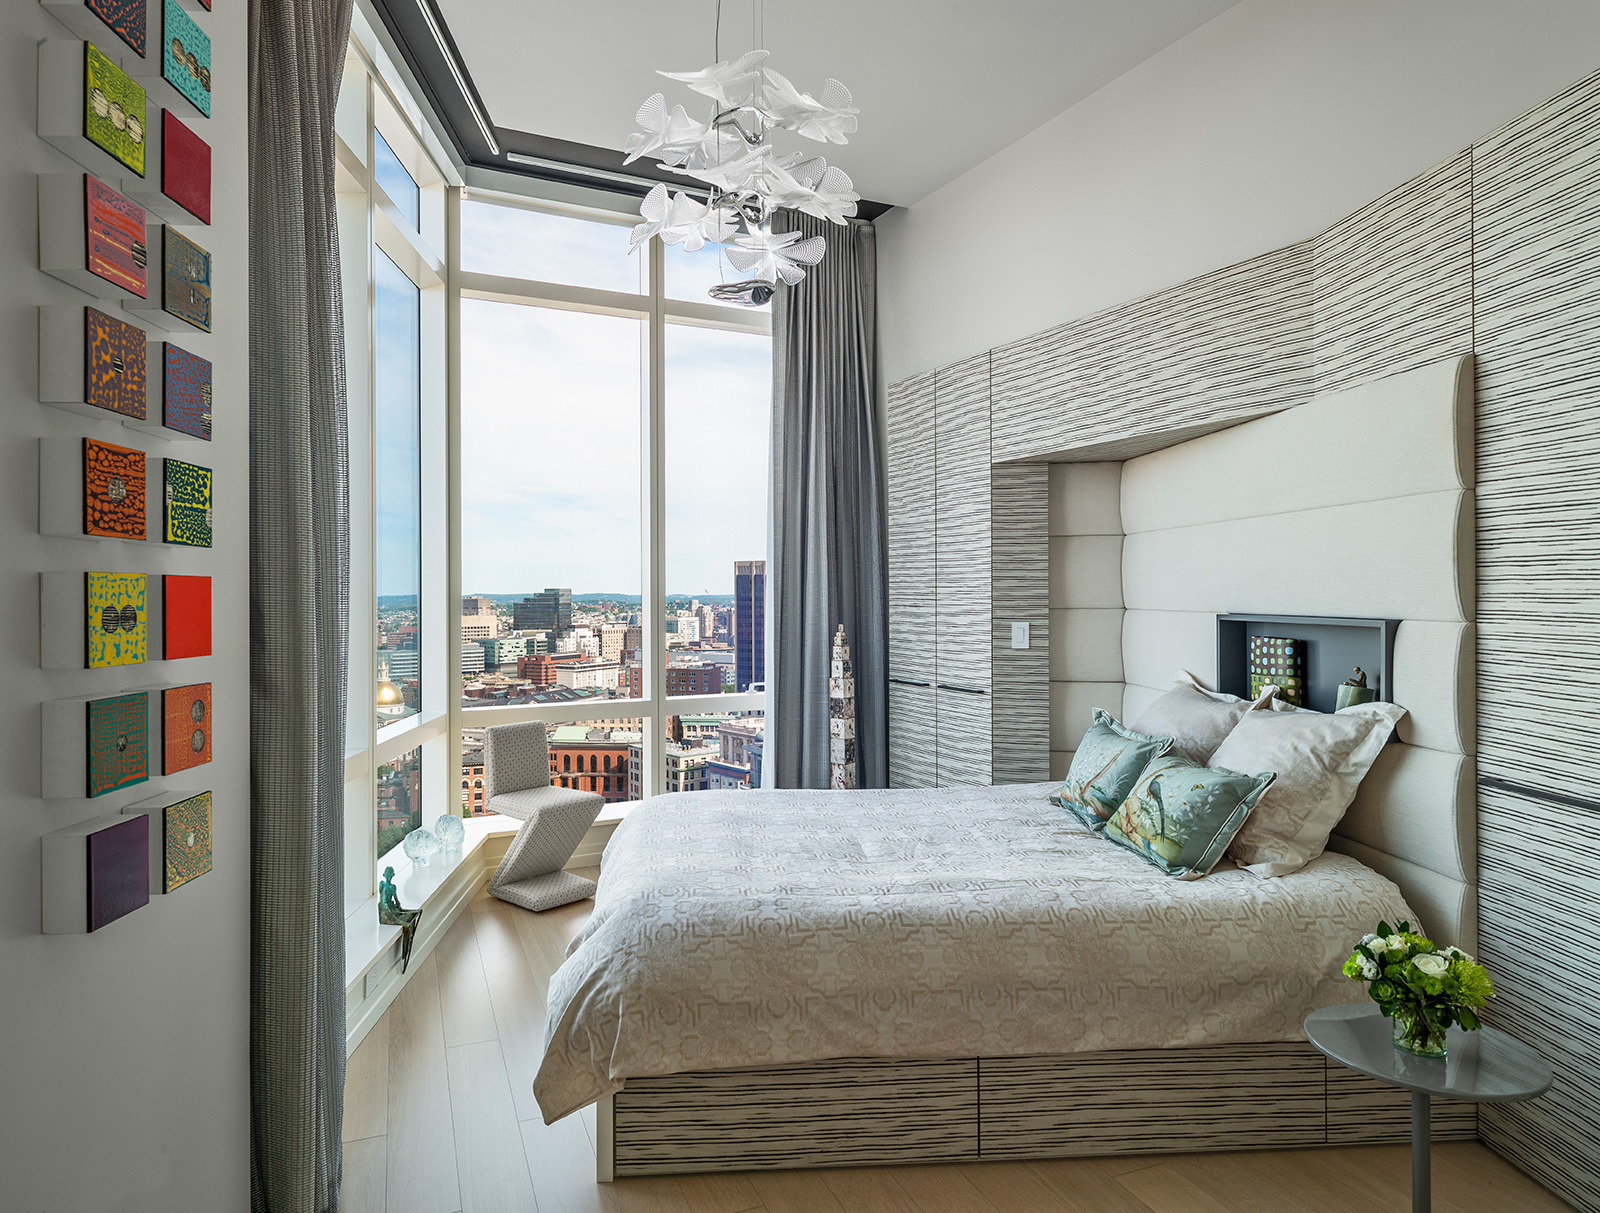 Luxury high-rise bedroom design